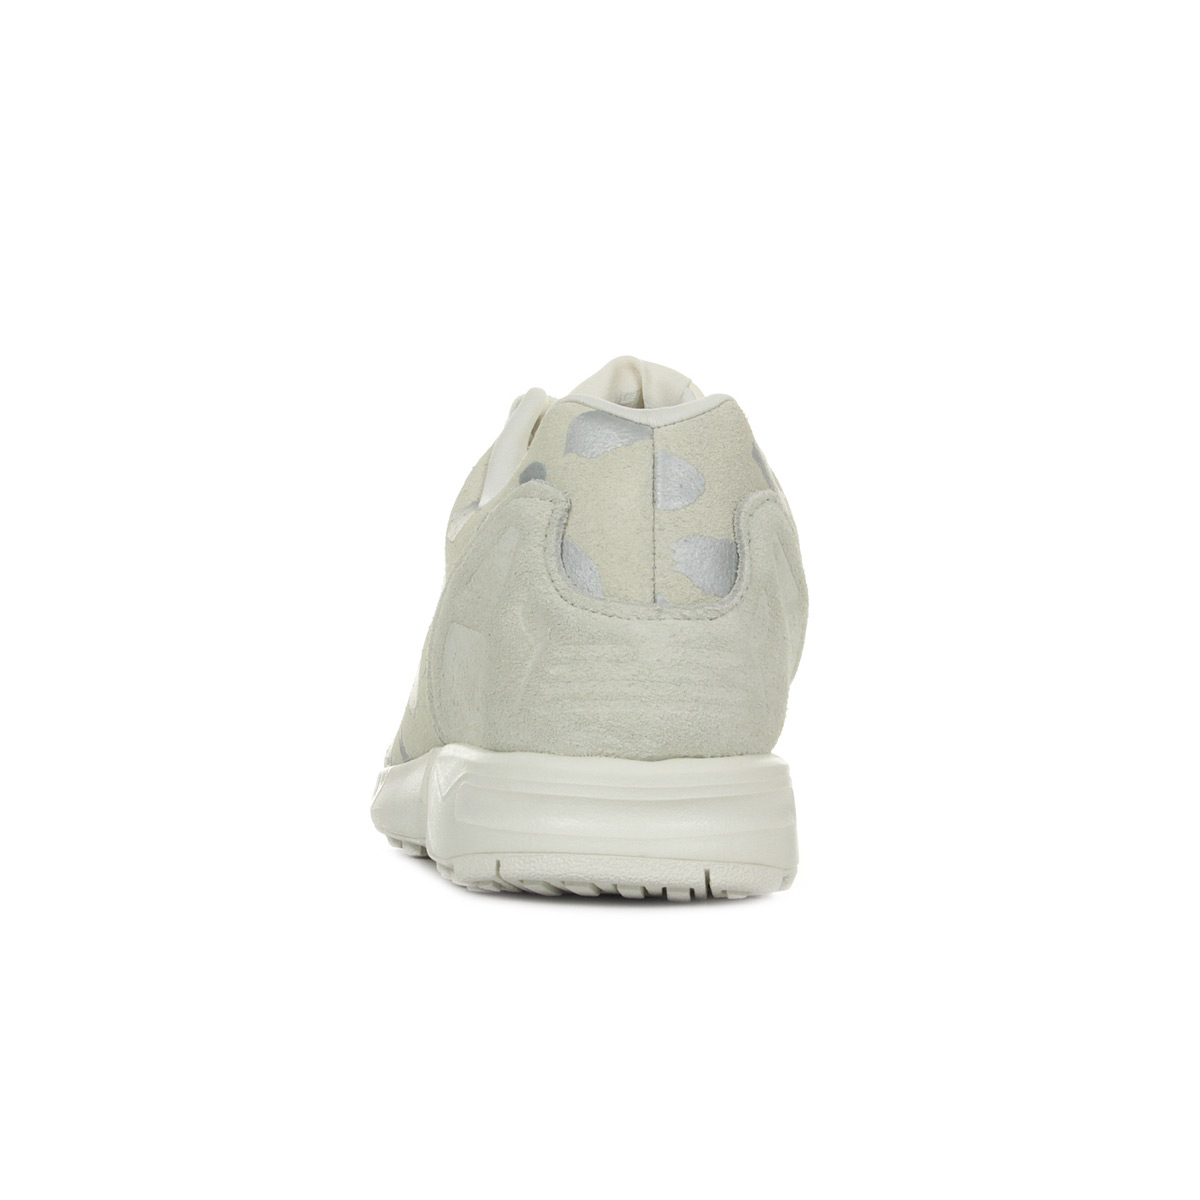 Zx Cuir Flux Lacets Femme Adidas Beige Baskets Taille Chaussures Ebay qwAFntv6